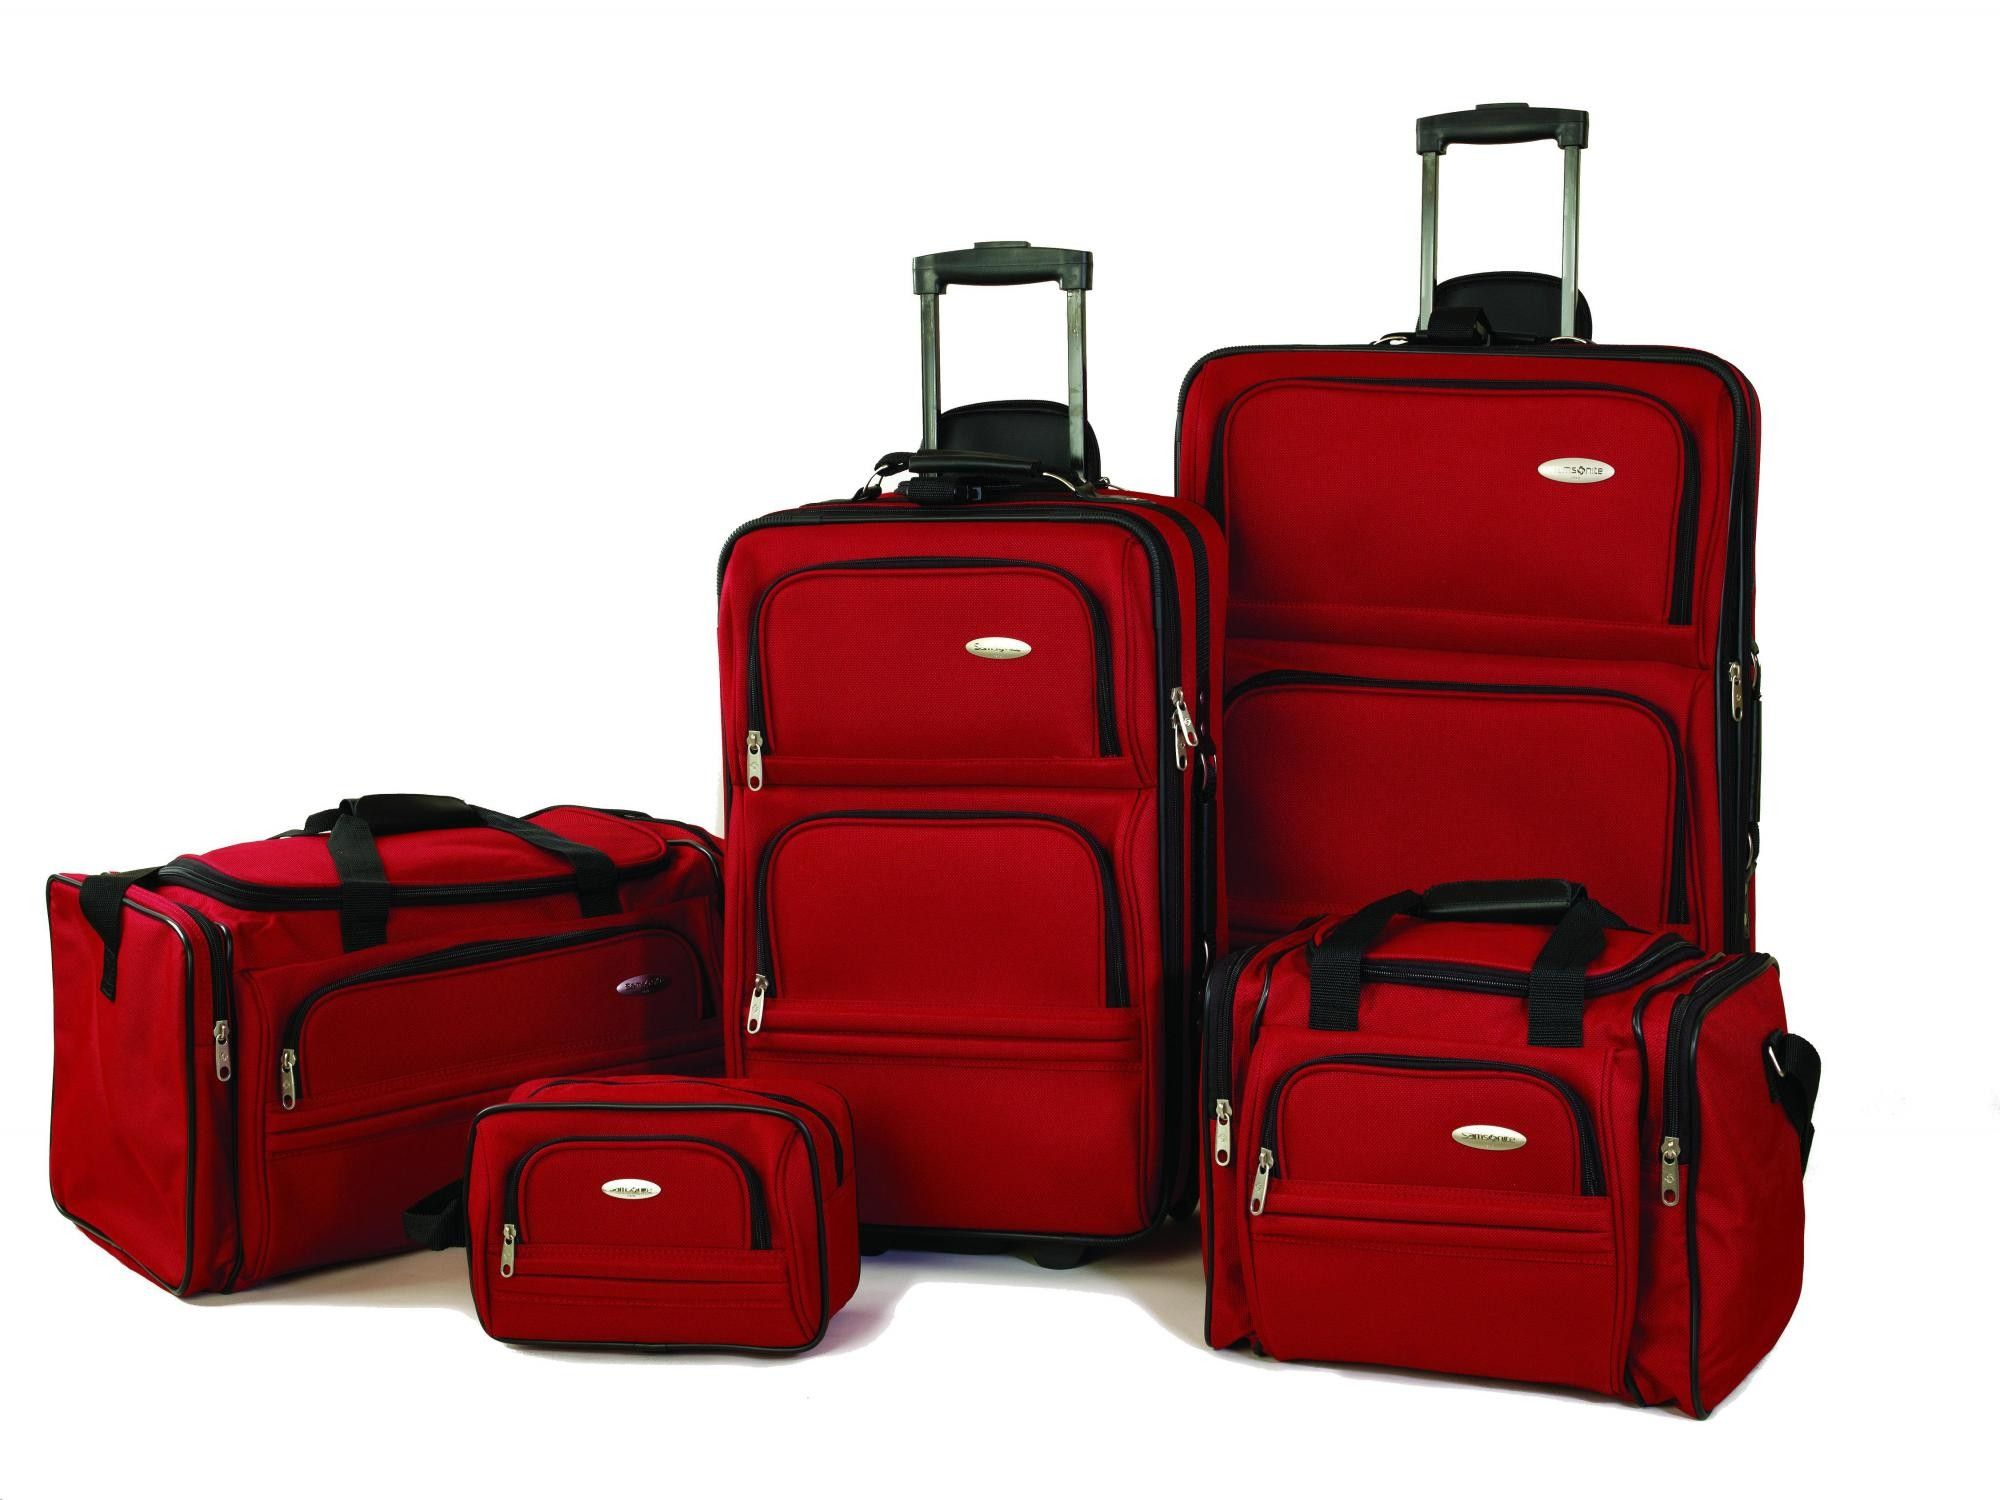 Samsonite Luggage Set - Five Piece Nested Set 17386-1726 | Luggage ...